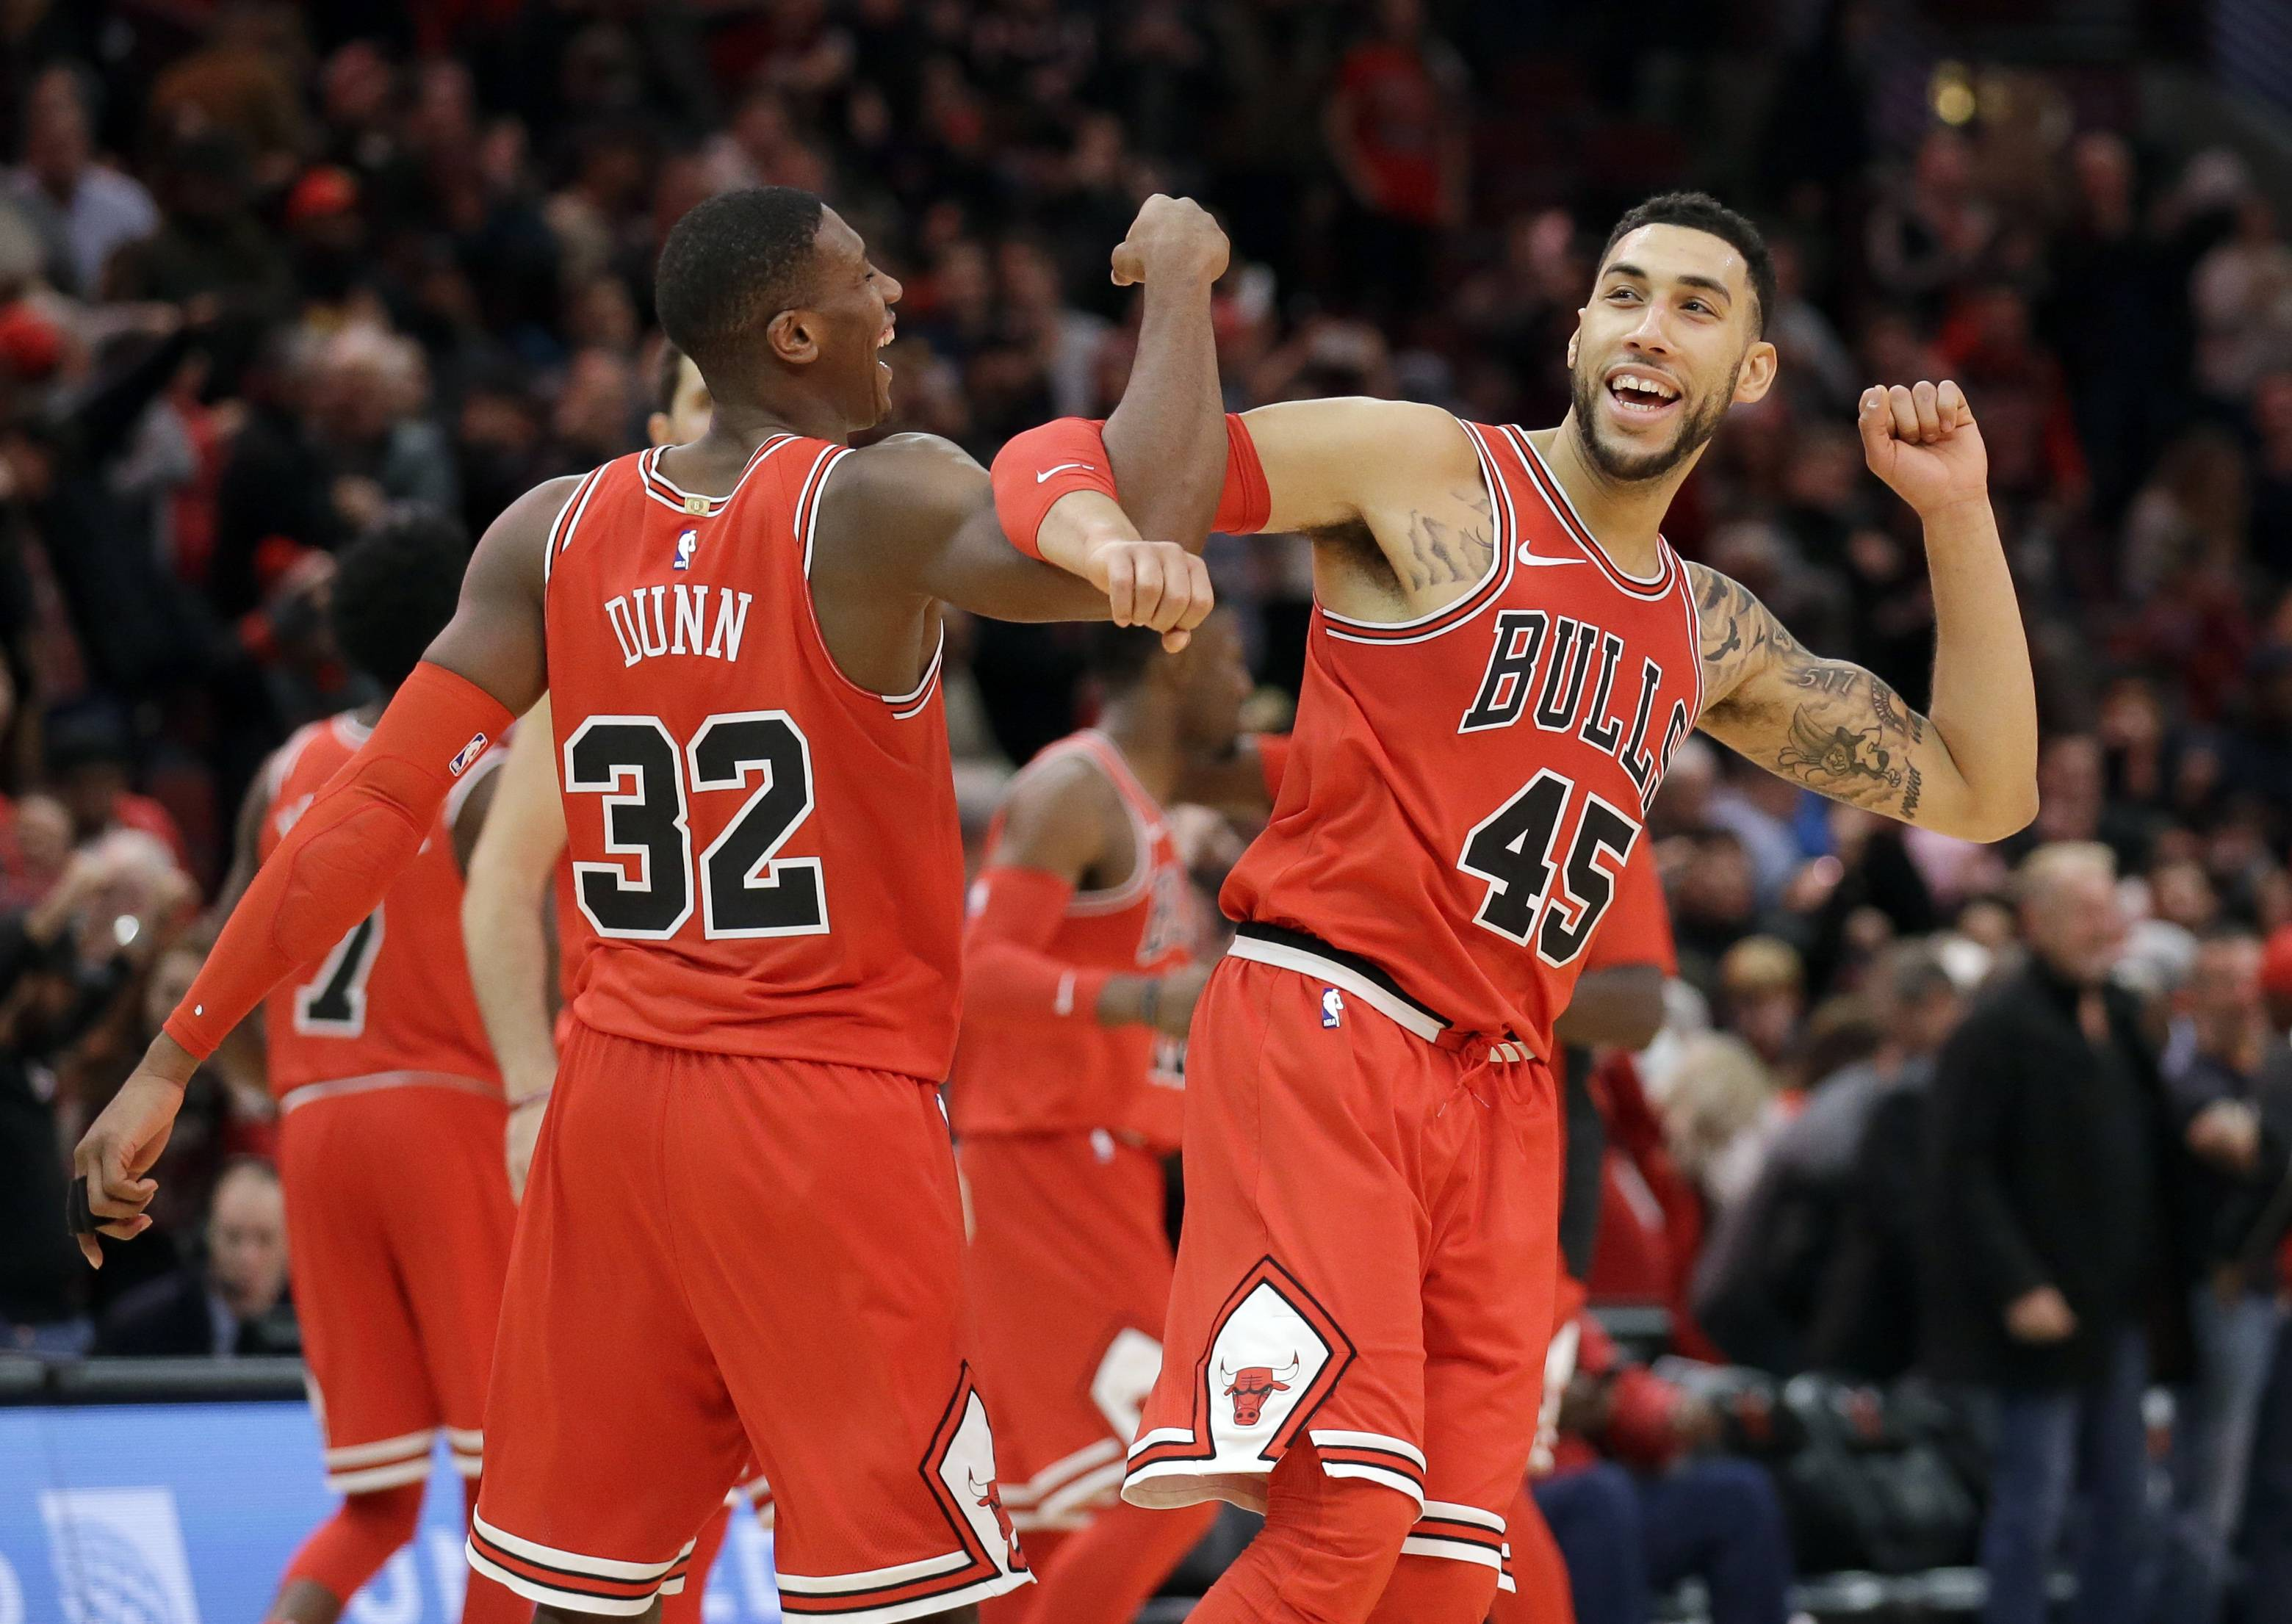 Dunn comes through in clutch as Bulls win fourth straight